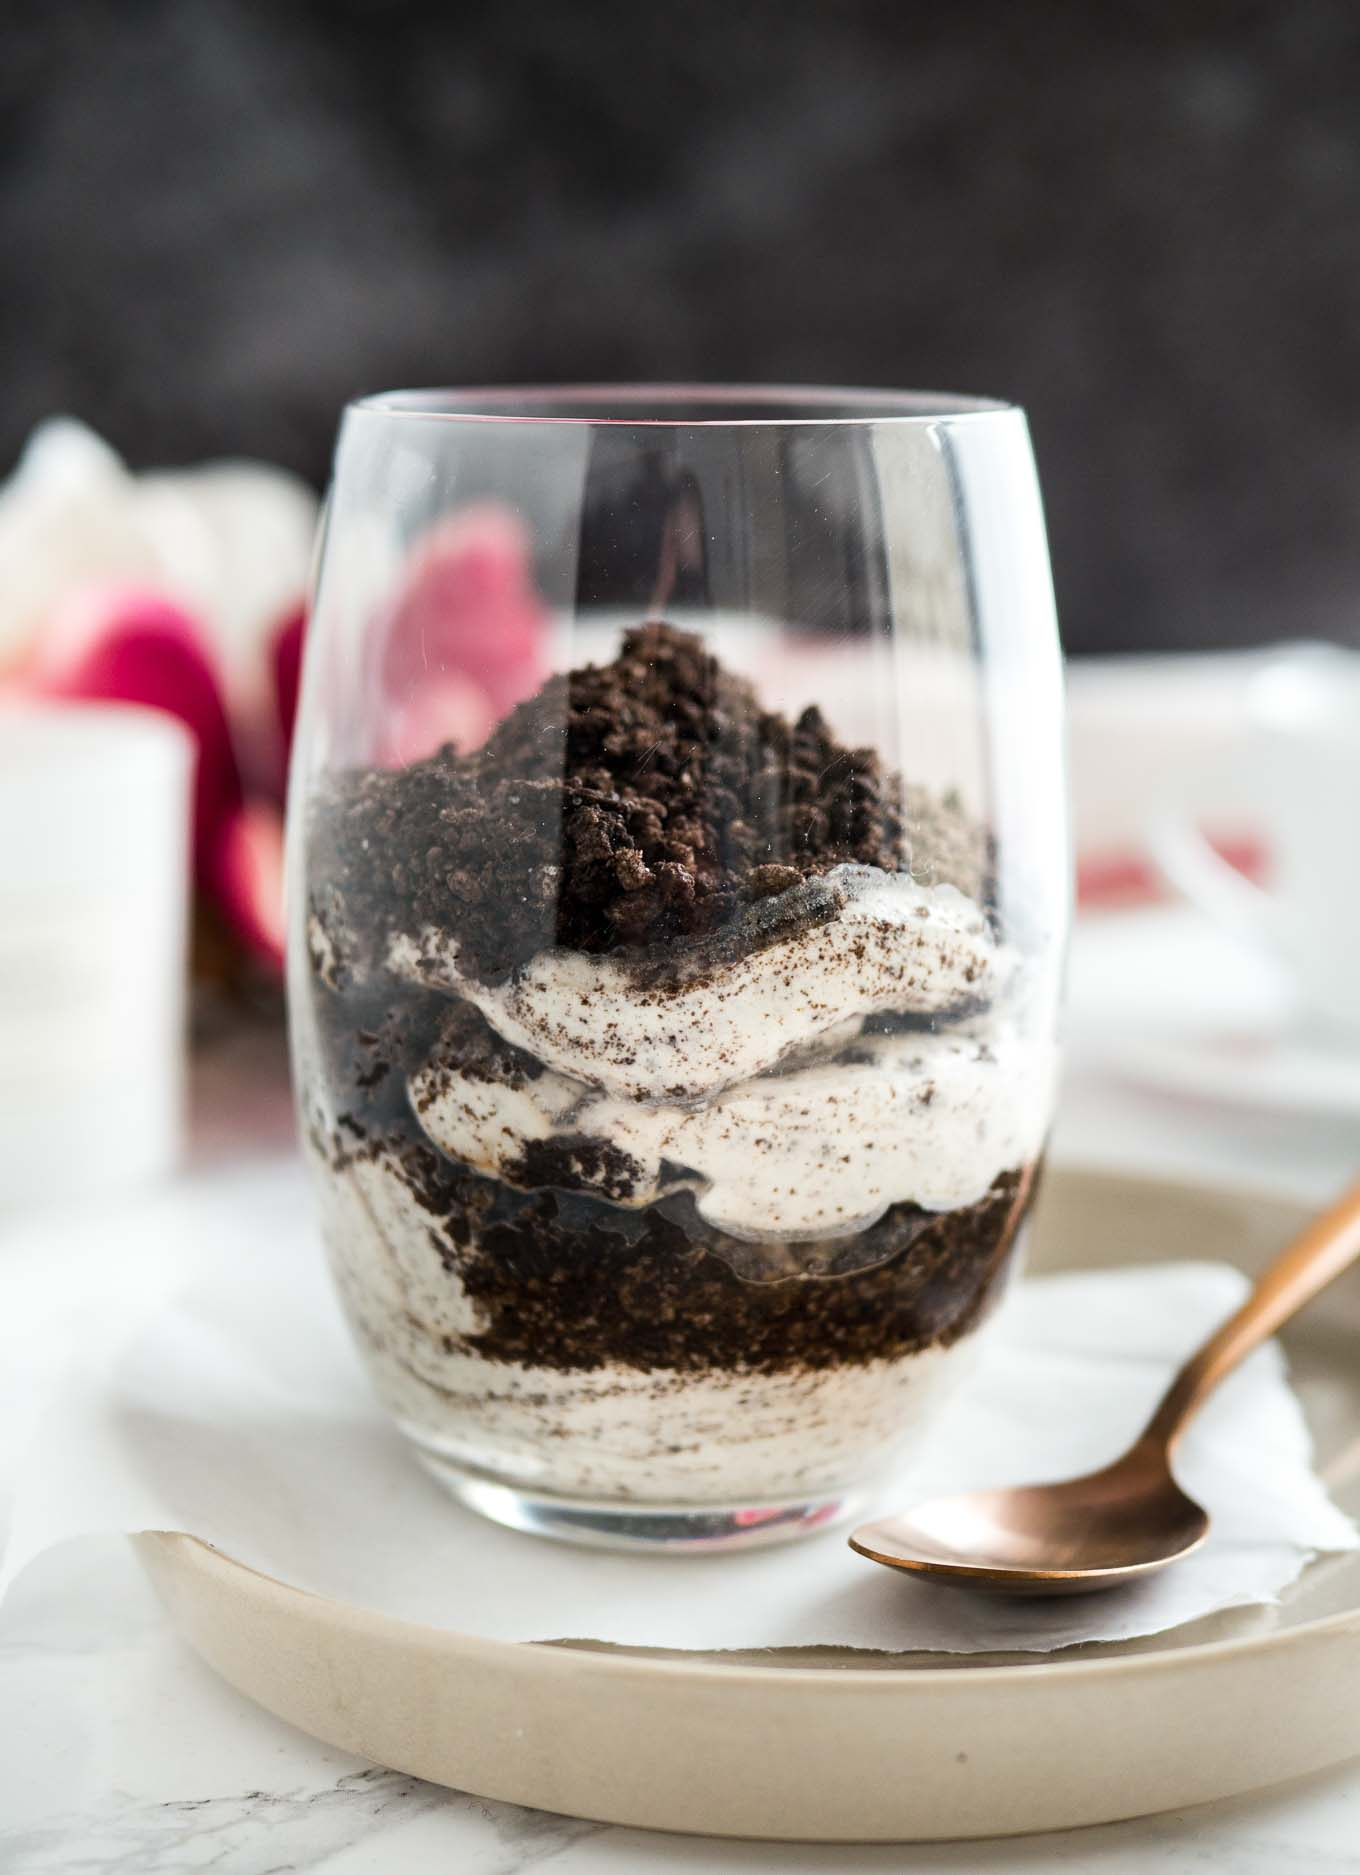 No Bake Oreo Cheesecake Parfaits Are Super Simple To Make With No Baking Involved A Delicious Cookies And Cream Dessert That Is Fast Easy And Foolproof